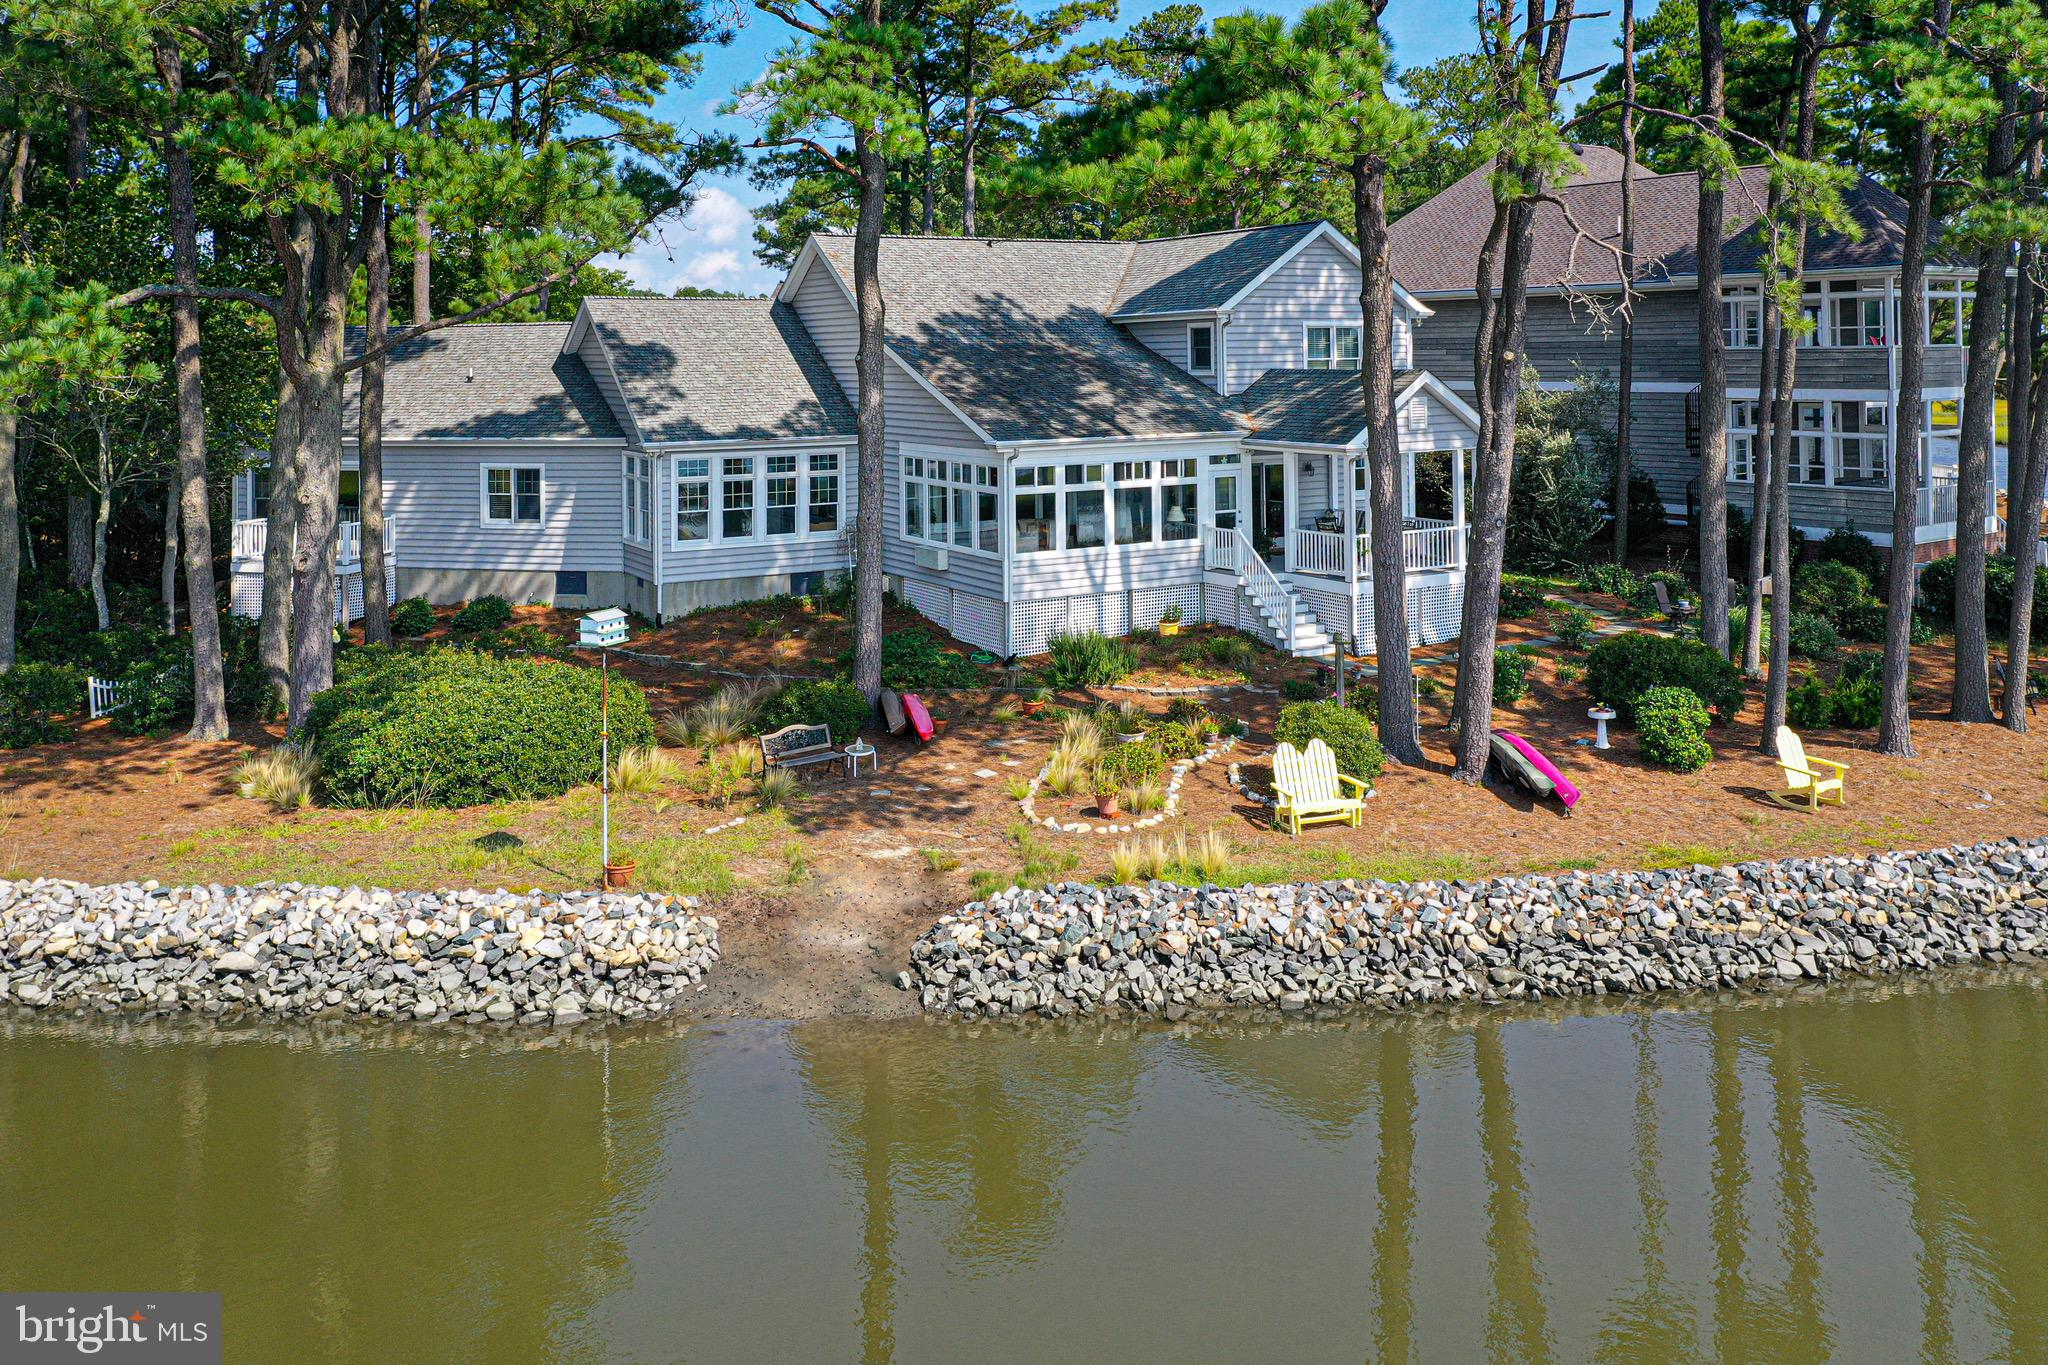 STUNNING WATER VIEWS that will take your BREATH AWAY! Enjoy the private rear yard which offers a tranquil setting with 168'of beautiful water frontage overlooking the Bay, Turville Creek and the Ocean City Skyline. This is one of the best views in Ocean Pines! Desirable cul de sac location with a large backyard where you can enjoy kayaking, water sports and wildlife. There is a covered deck where you can relax with your morning coffee as you watch the beautiful sunrise, and in the evenings you will love the colorful skies as the sun is setting and the lights of Ocean City reflect in the water.  Quality construction, owned by original owners. Builders personal residence which offers a bright open floorplan with lots of natural sunlight and a southern exposure. As you approach the home, you will notice a n elegant paver driveway and oversized (24x30) garage. Brick front steps lead you to a covered front porch. As you enter the home, you'll see the panoramic water views and a spacious great room with a unique custom wood ceiling. There are 2 sunrooms, which are great for entertaining. There is a spacious first floor primary suite which offers a private balcony, sitting/ tv area and a large bath. Upstairs features 2 bedrooms, full bath and a large multi purpose room over the garage which would make a great office or game room.  All the bedrooms have access to a bathroom. Geothermal HVAC system offers low electric bills. This floorplan was designed to take advantage of the water views, with no wasted space. There are many additional features including nice trim detailing and ample storage including 2 floored attics with pull down stairs.  Schedule your appointment today!